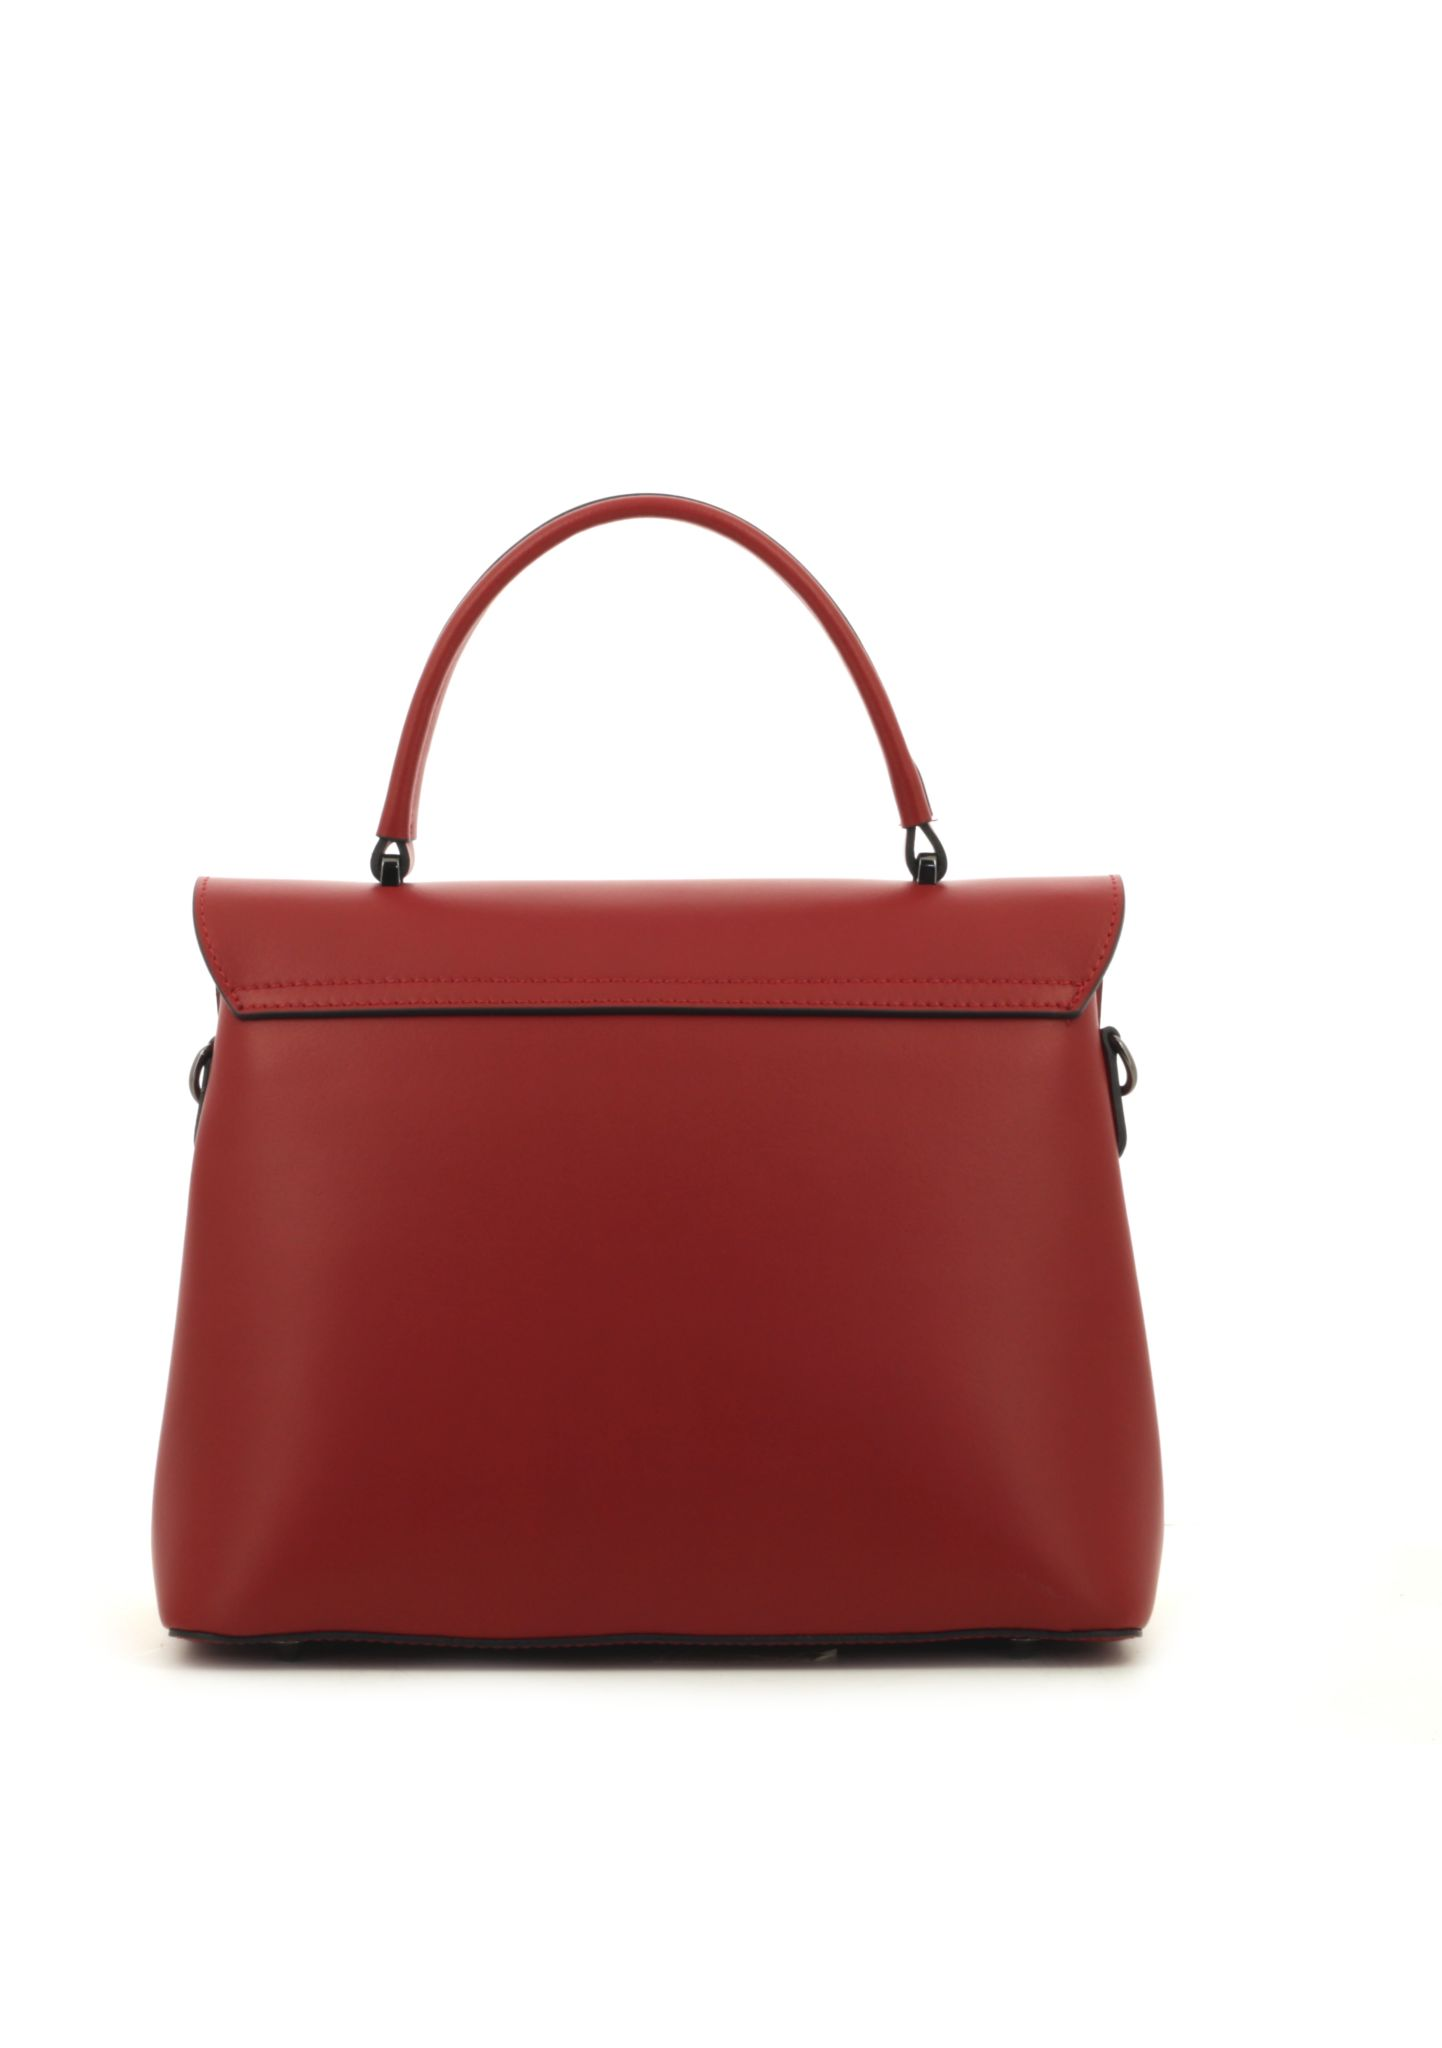 Red Ruga Leather Handbag With Detachable Strap - Large Size 035 detail 3